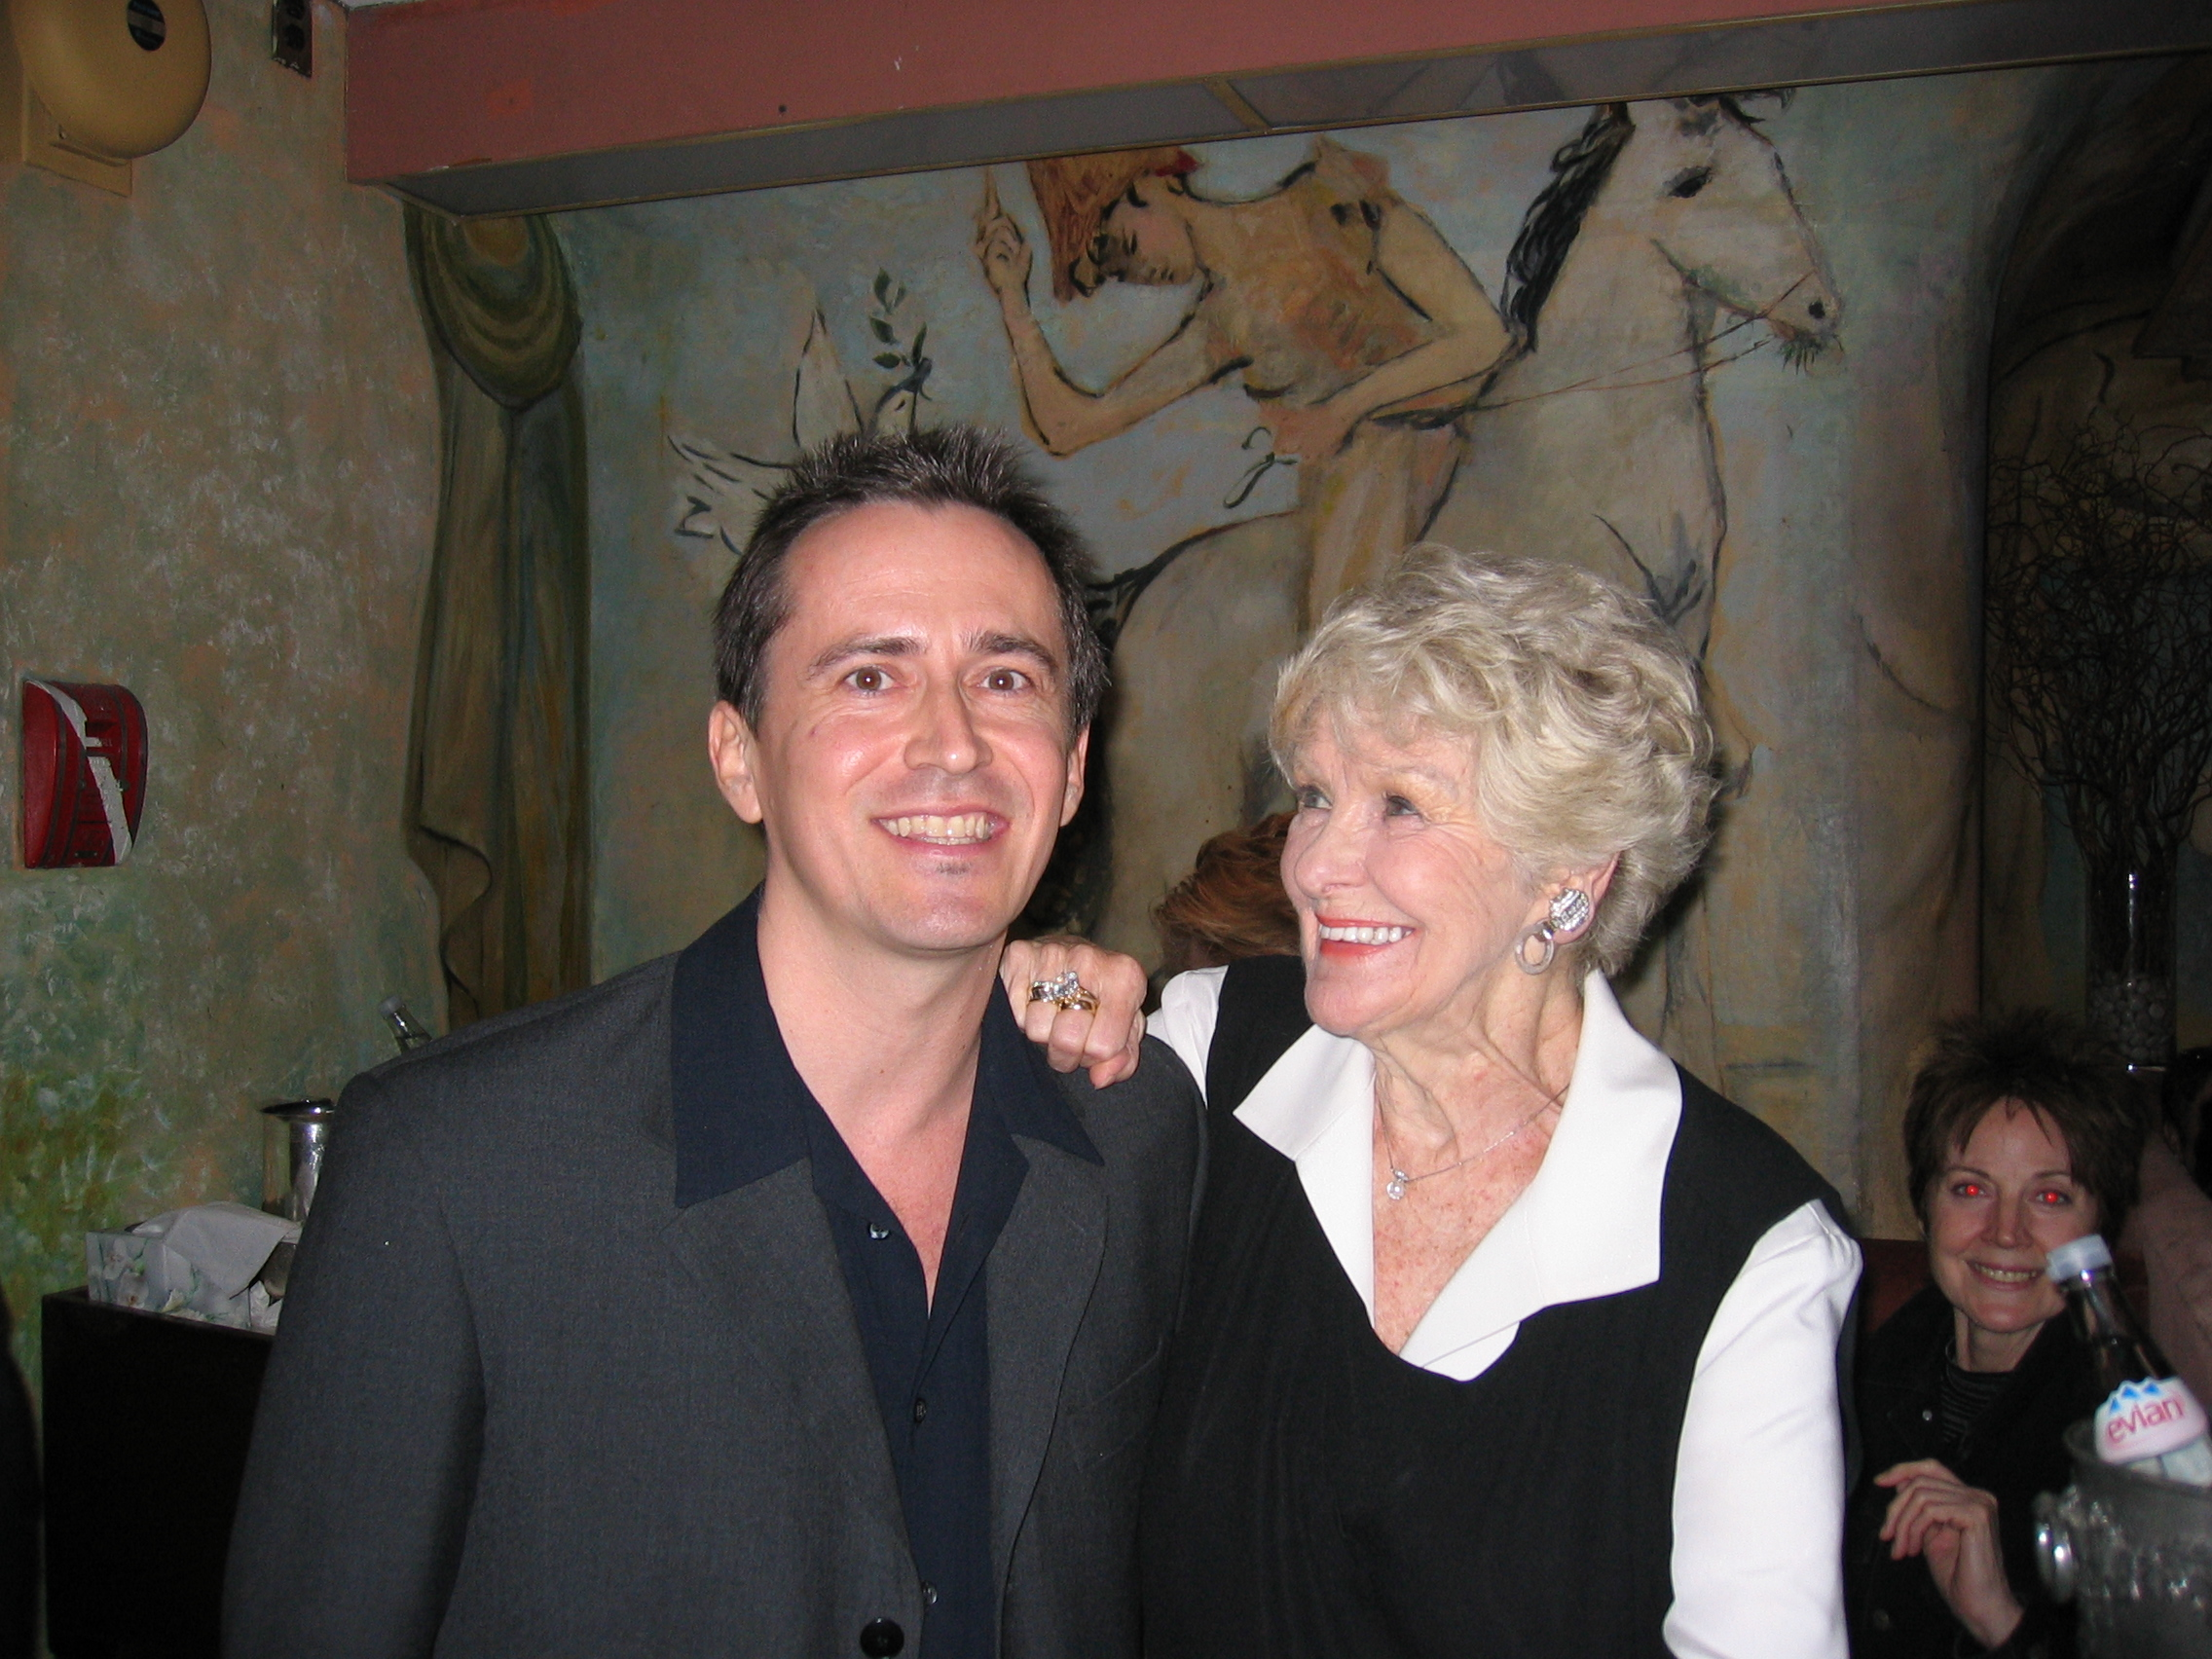 DJ Andy Anderson and Elaine Stritch (The Pierre anniversary event)